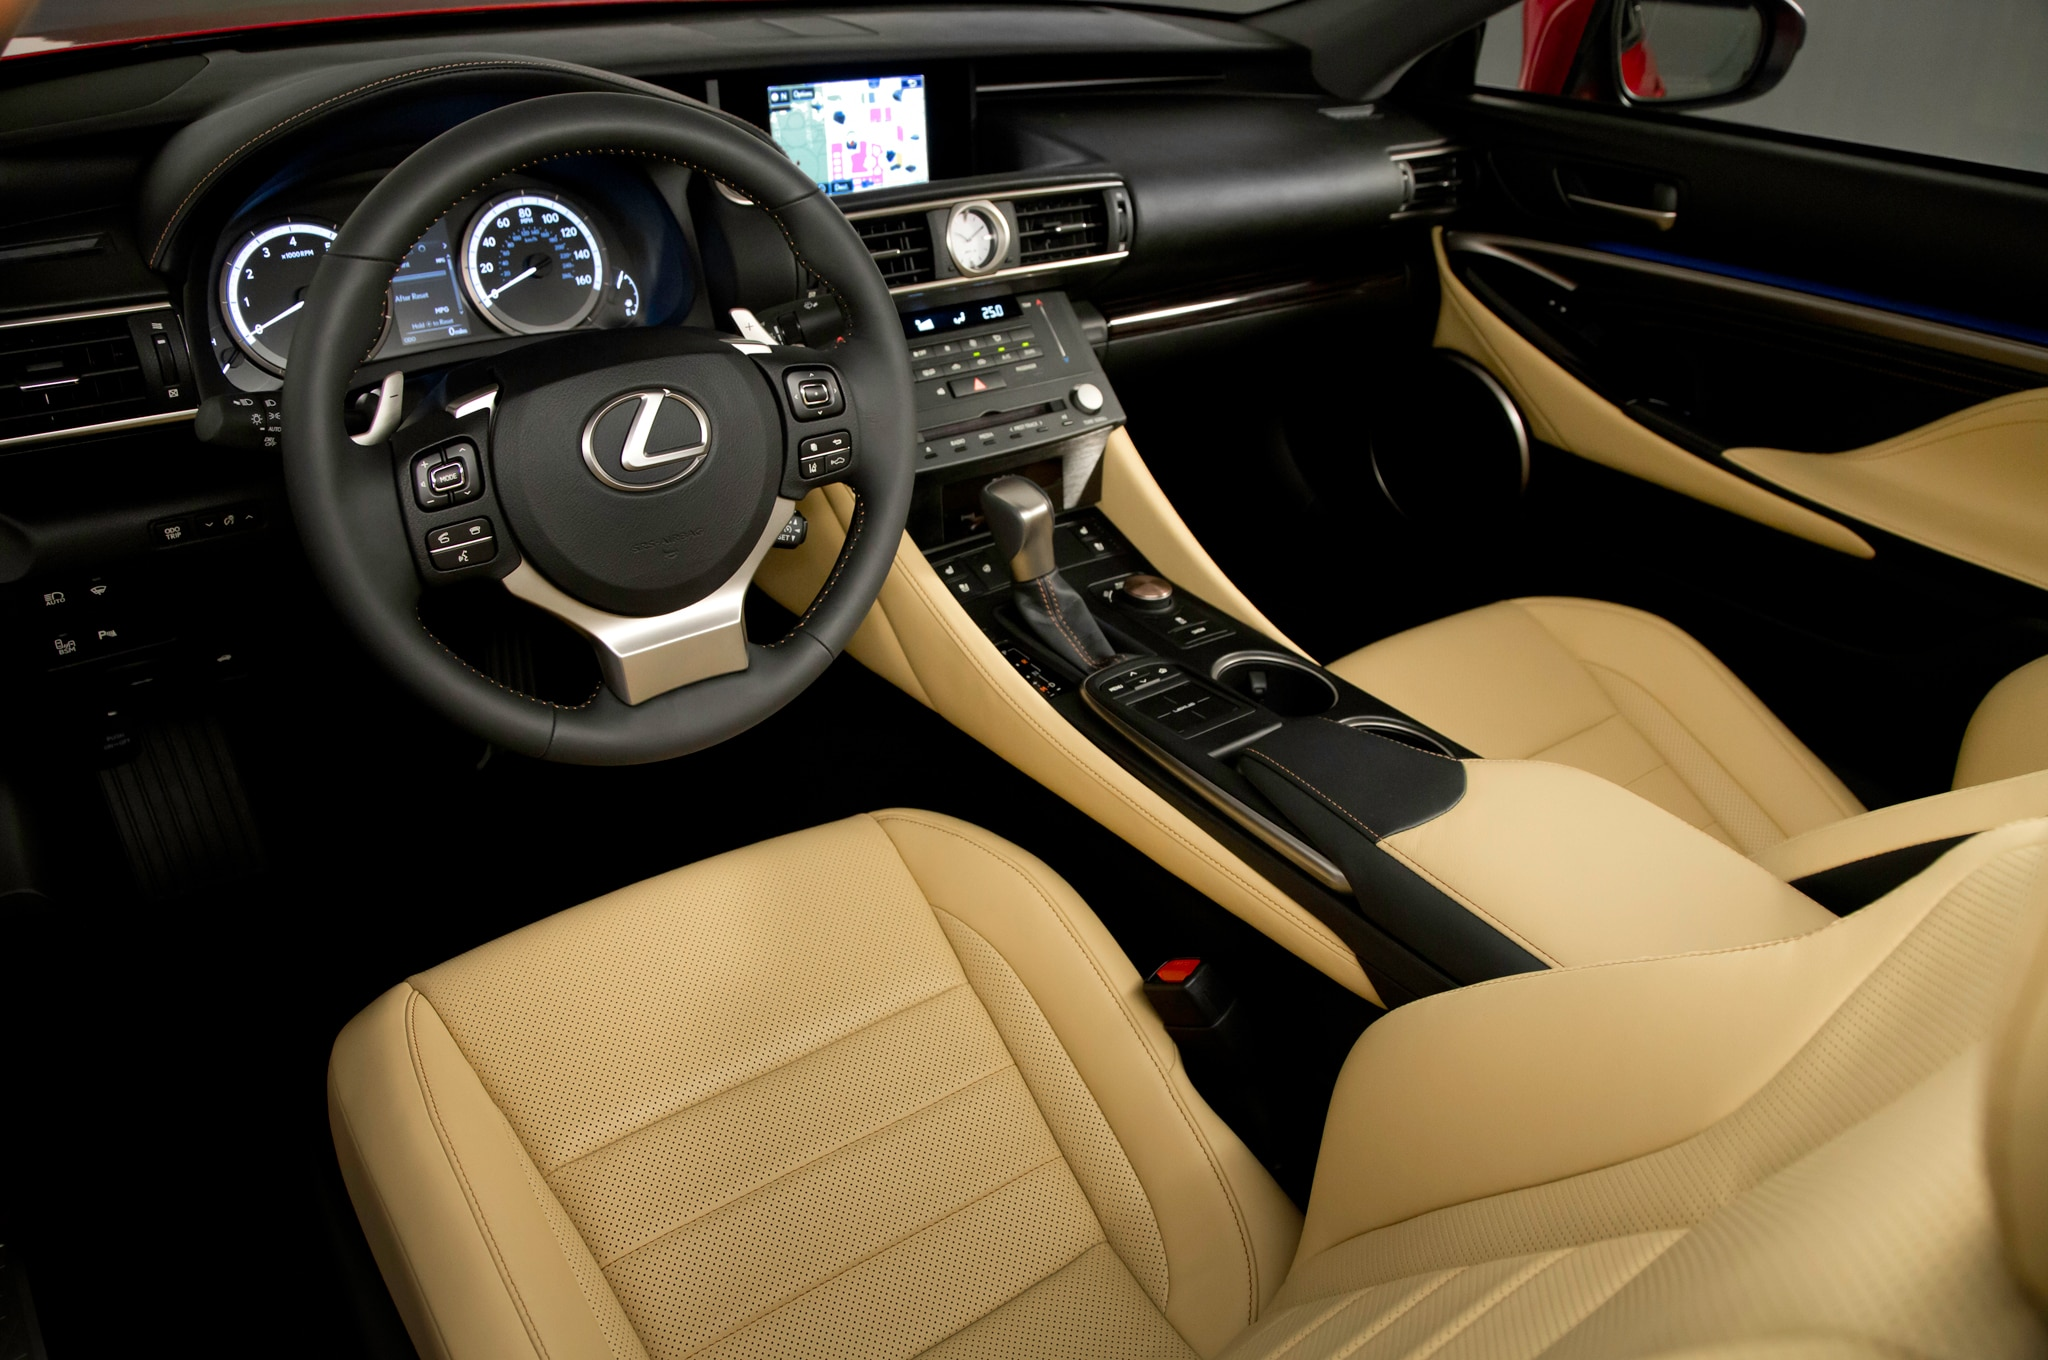 2015 Lexus ES, GS, LS, CT, GX, LX Updated For New Model Year